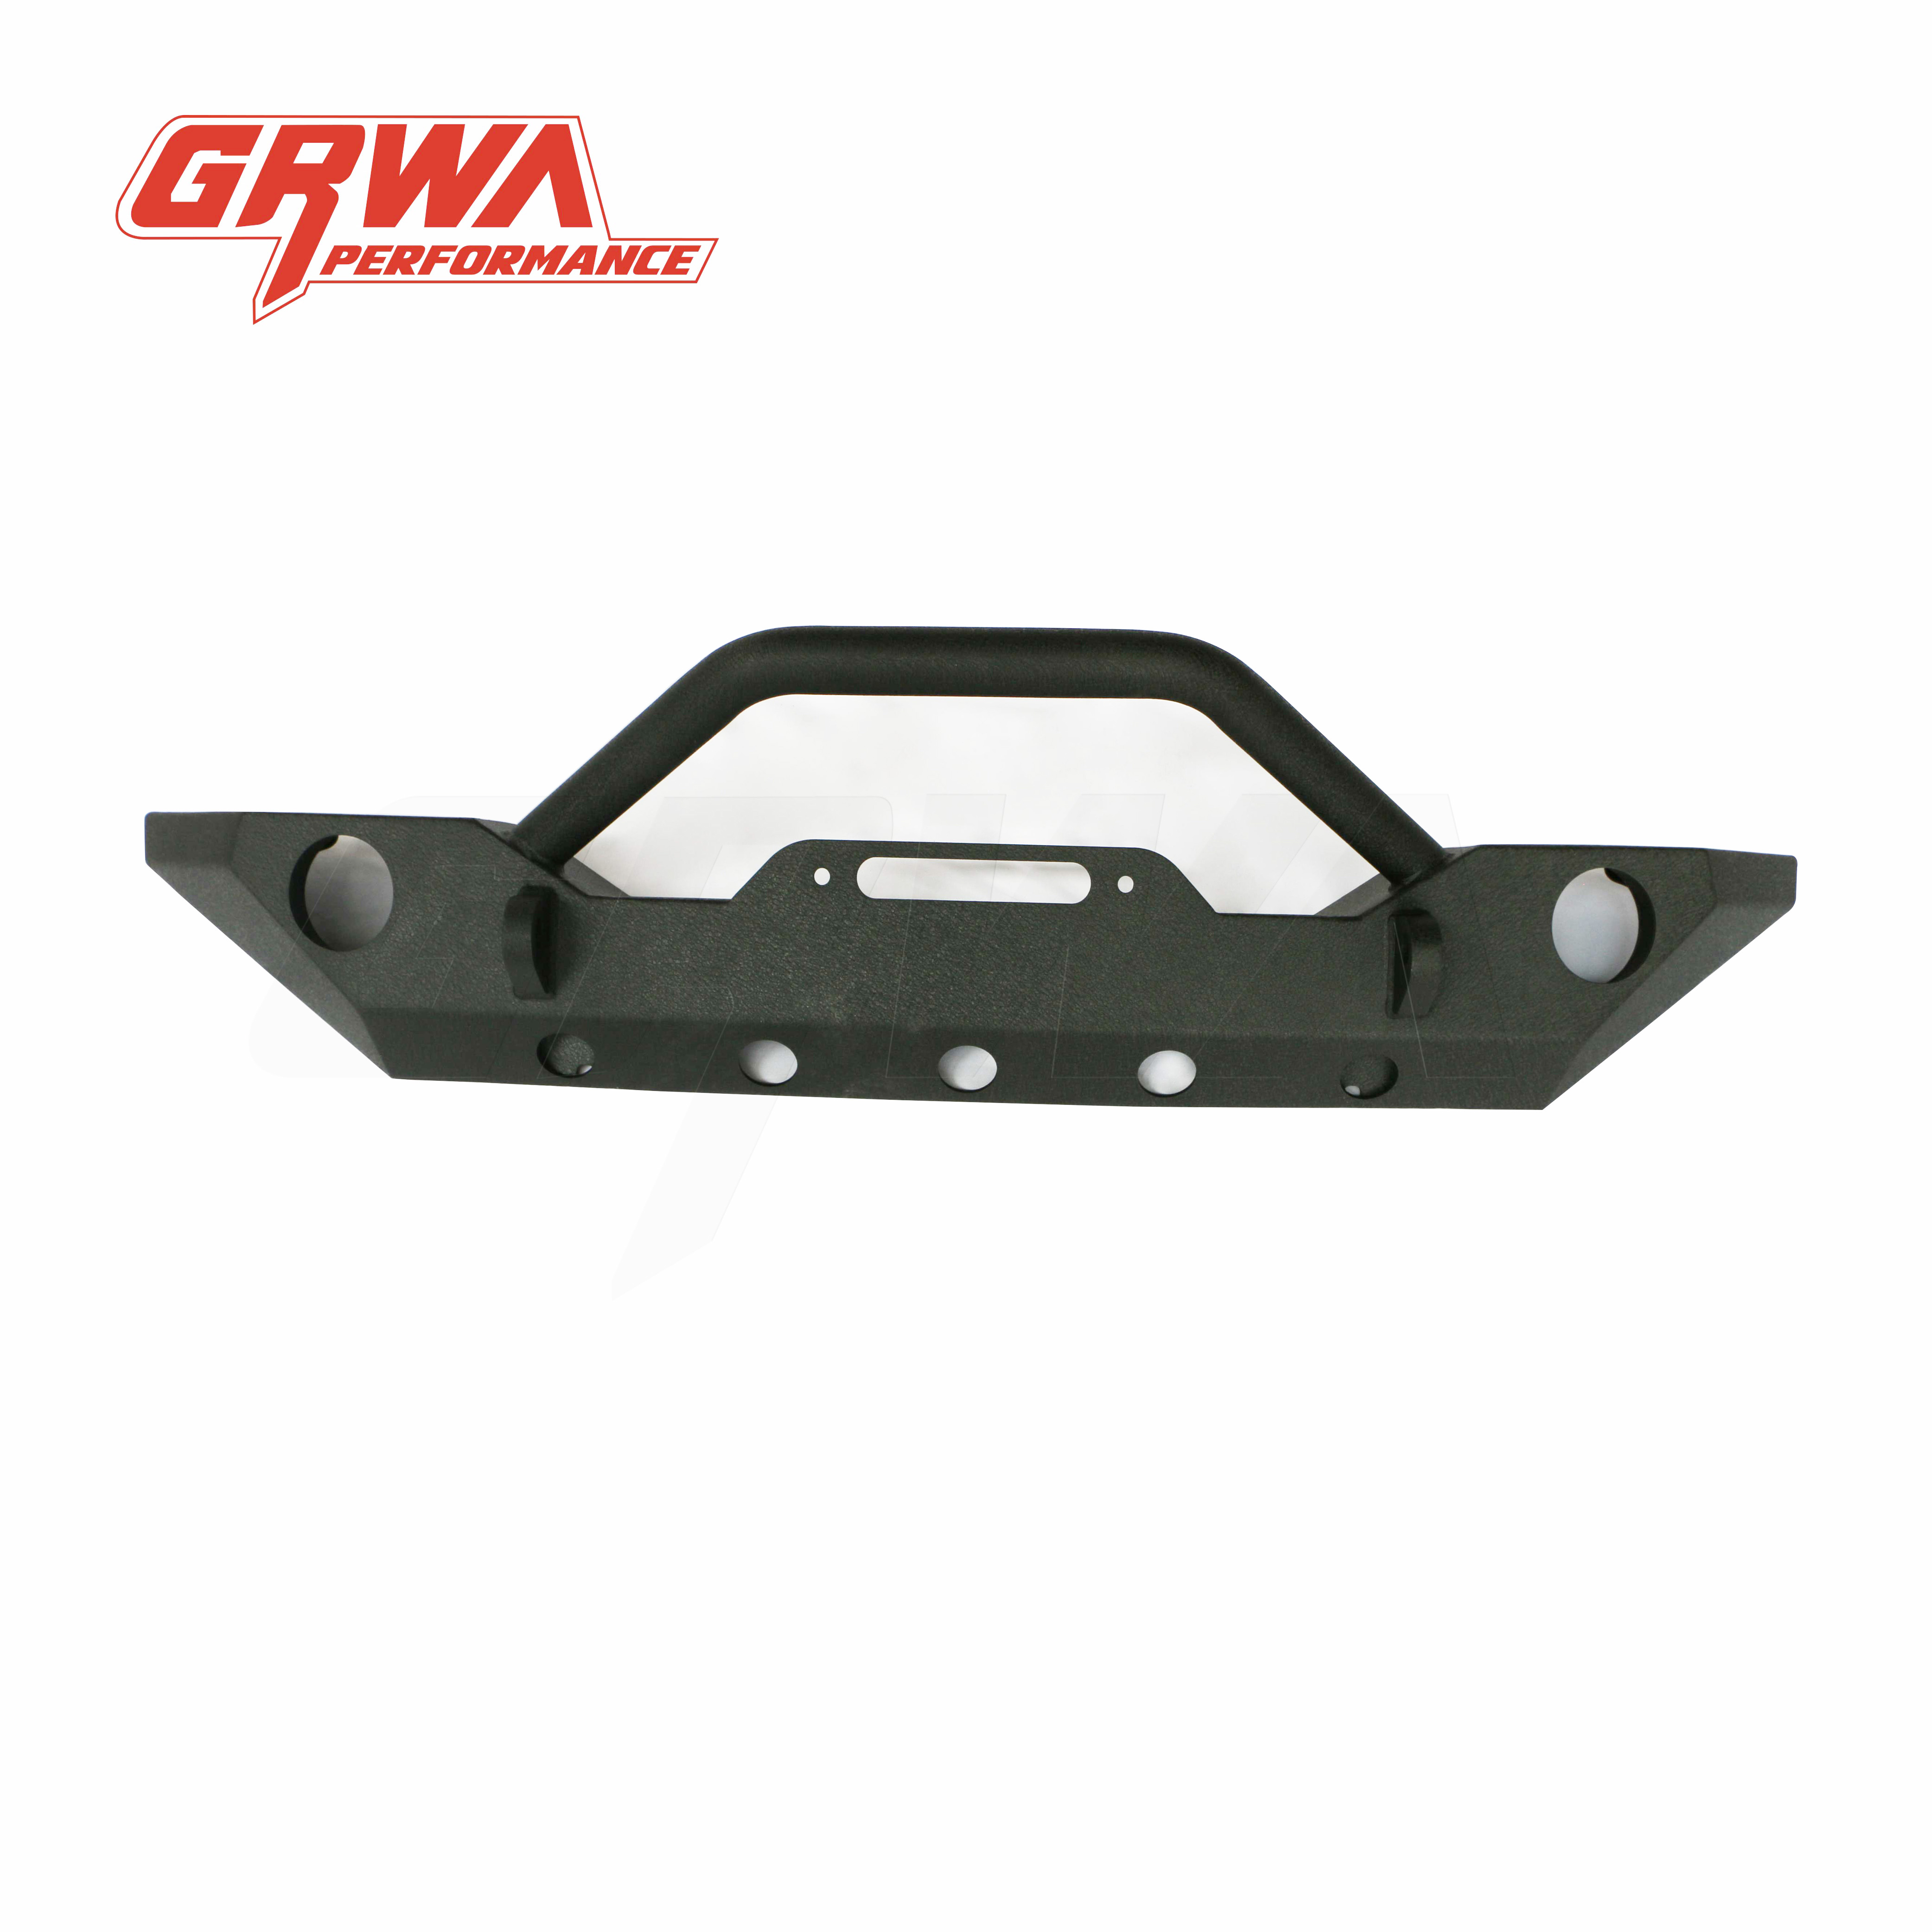 China best quality GRWA front bumper for jeep wrangler